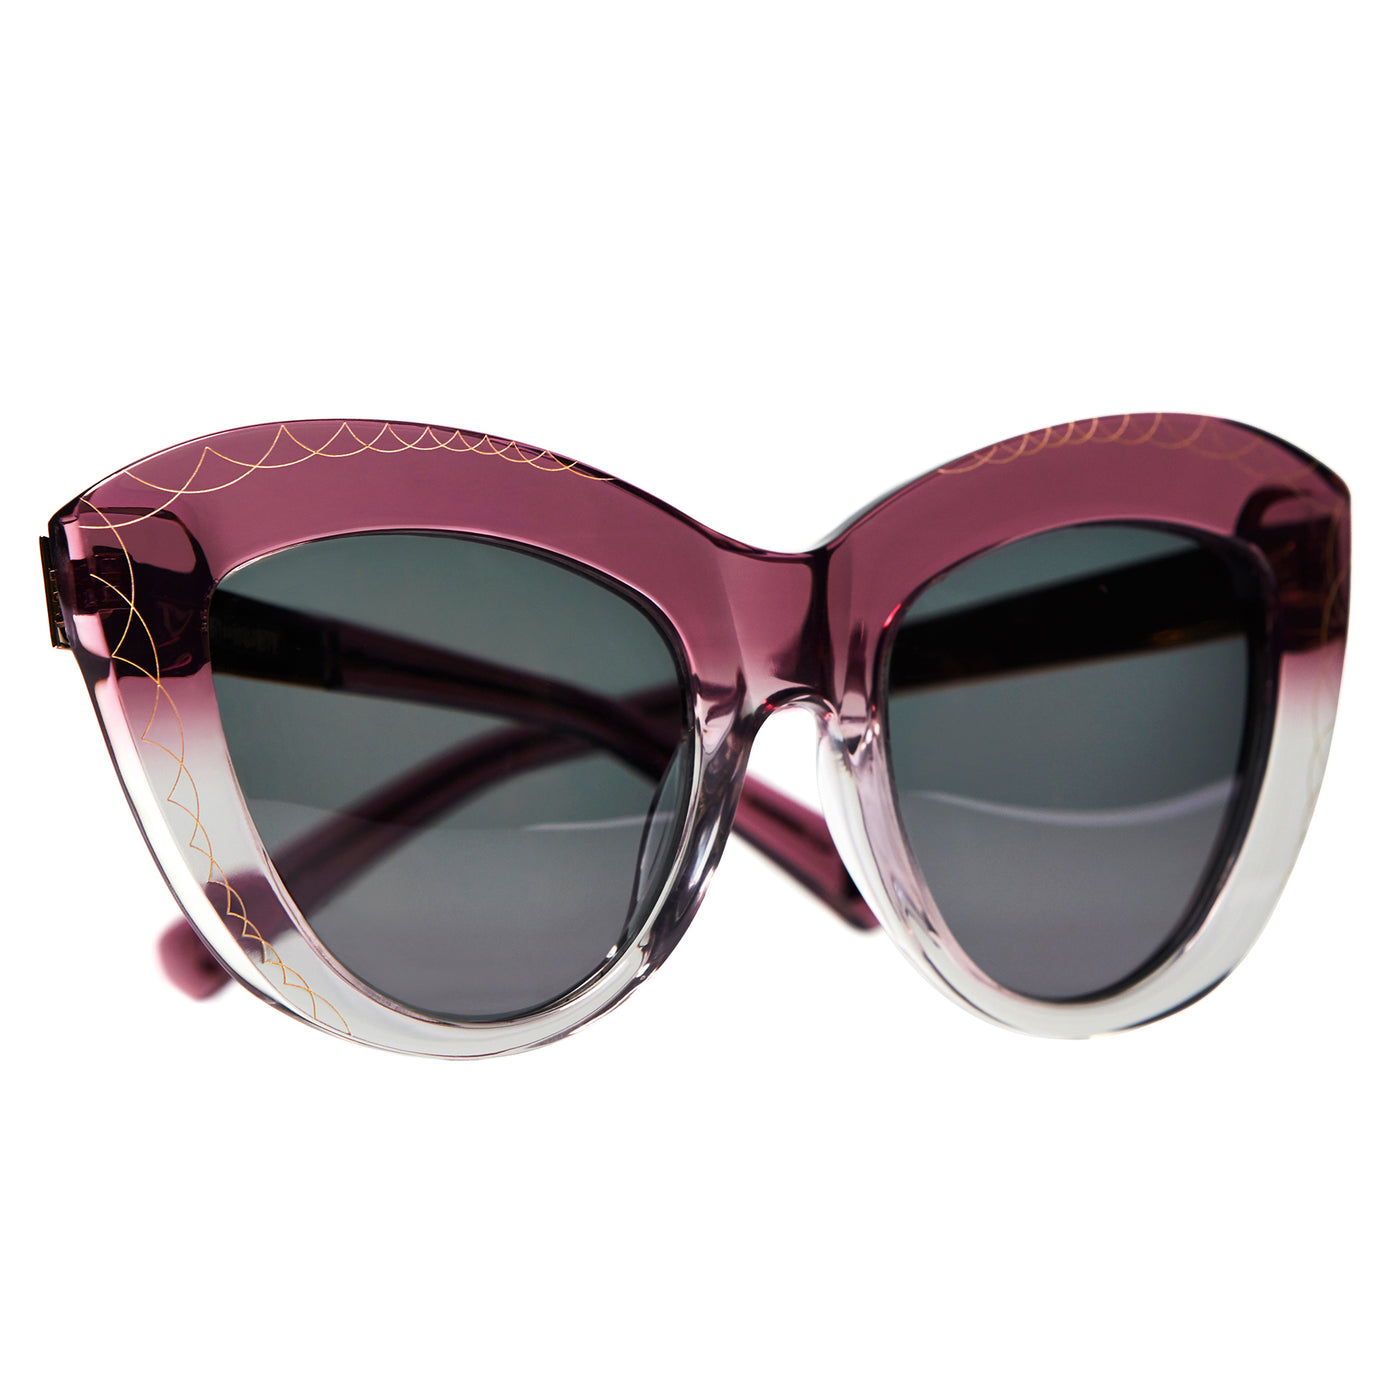 cat eye sunglasses, purple sunglasses, magenta sunglasses, oversized sunglasses, oversize glasses, oversize sunglasses, travel, wanderlust, art deco, art deco fashion, art deco inspo, celebrity style, chic sunglasses, eyewear, sunglasses, sunnies, celebrity eyewear, los angeles, los angeles eyewear, designer eywear, designer, luxury eyewear, avant garde eyewear, unisex eyewear